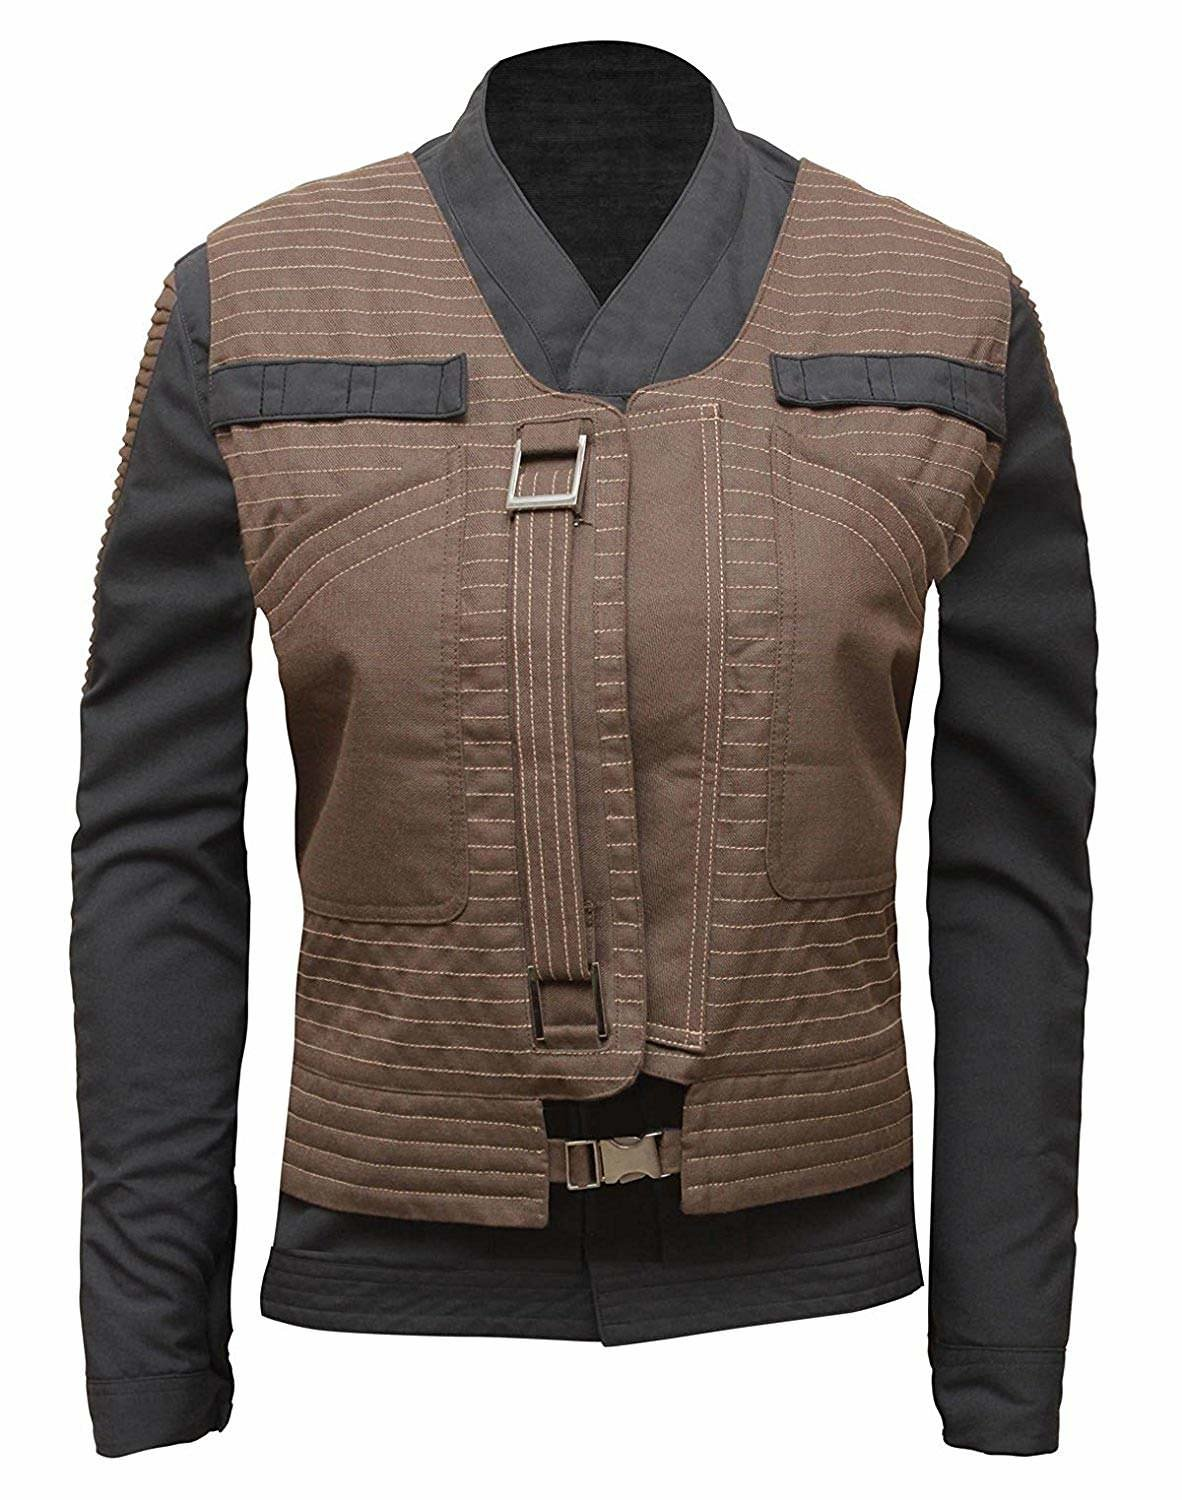 Rogue One Jyn Erso Star Wars Vest Womens | M by Decrum